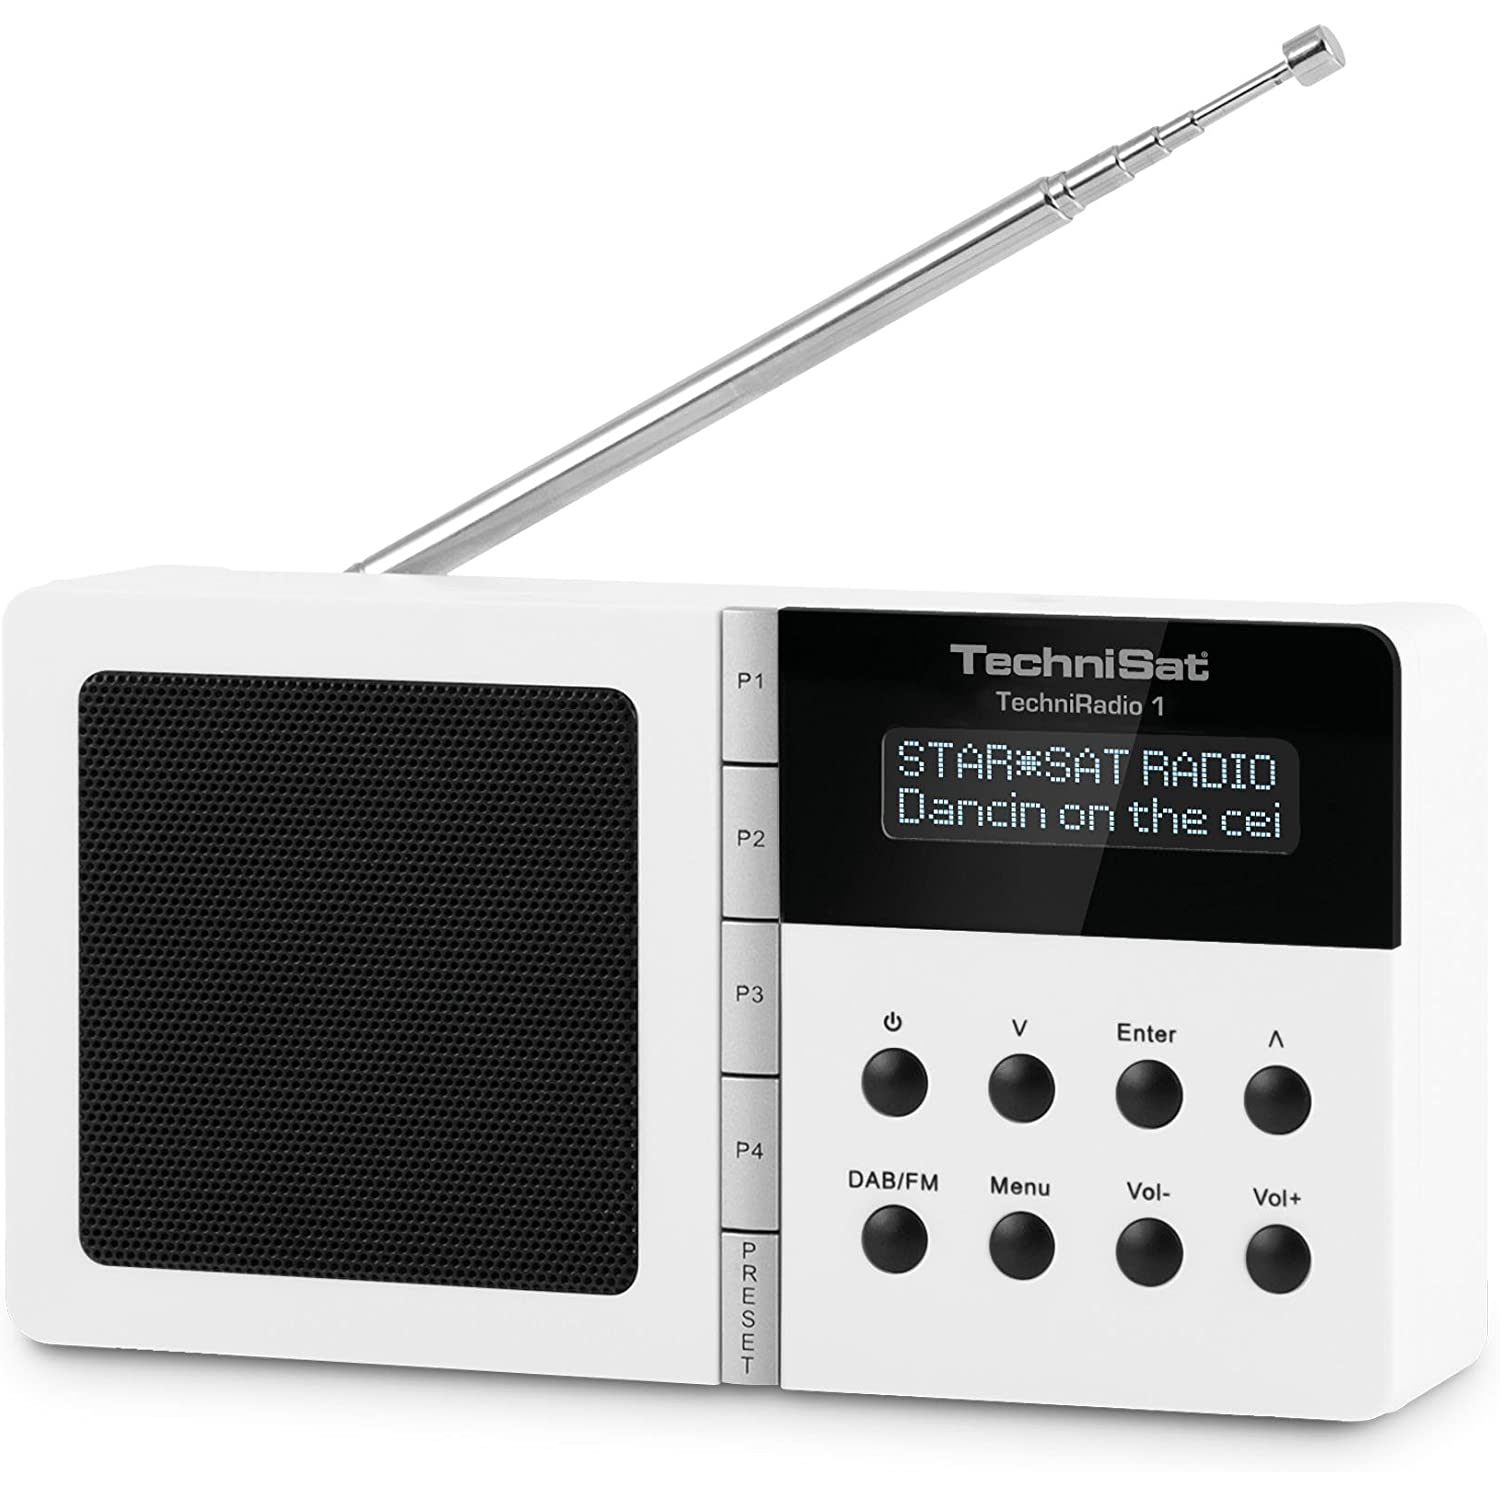 TechniSat Digitalradio